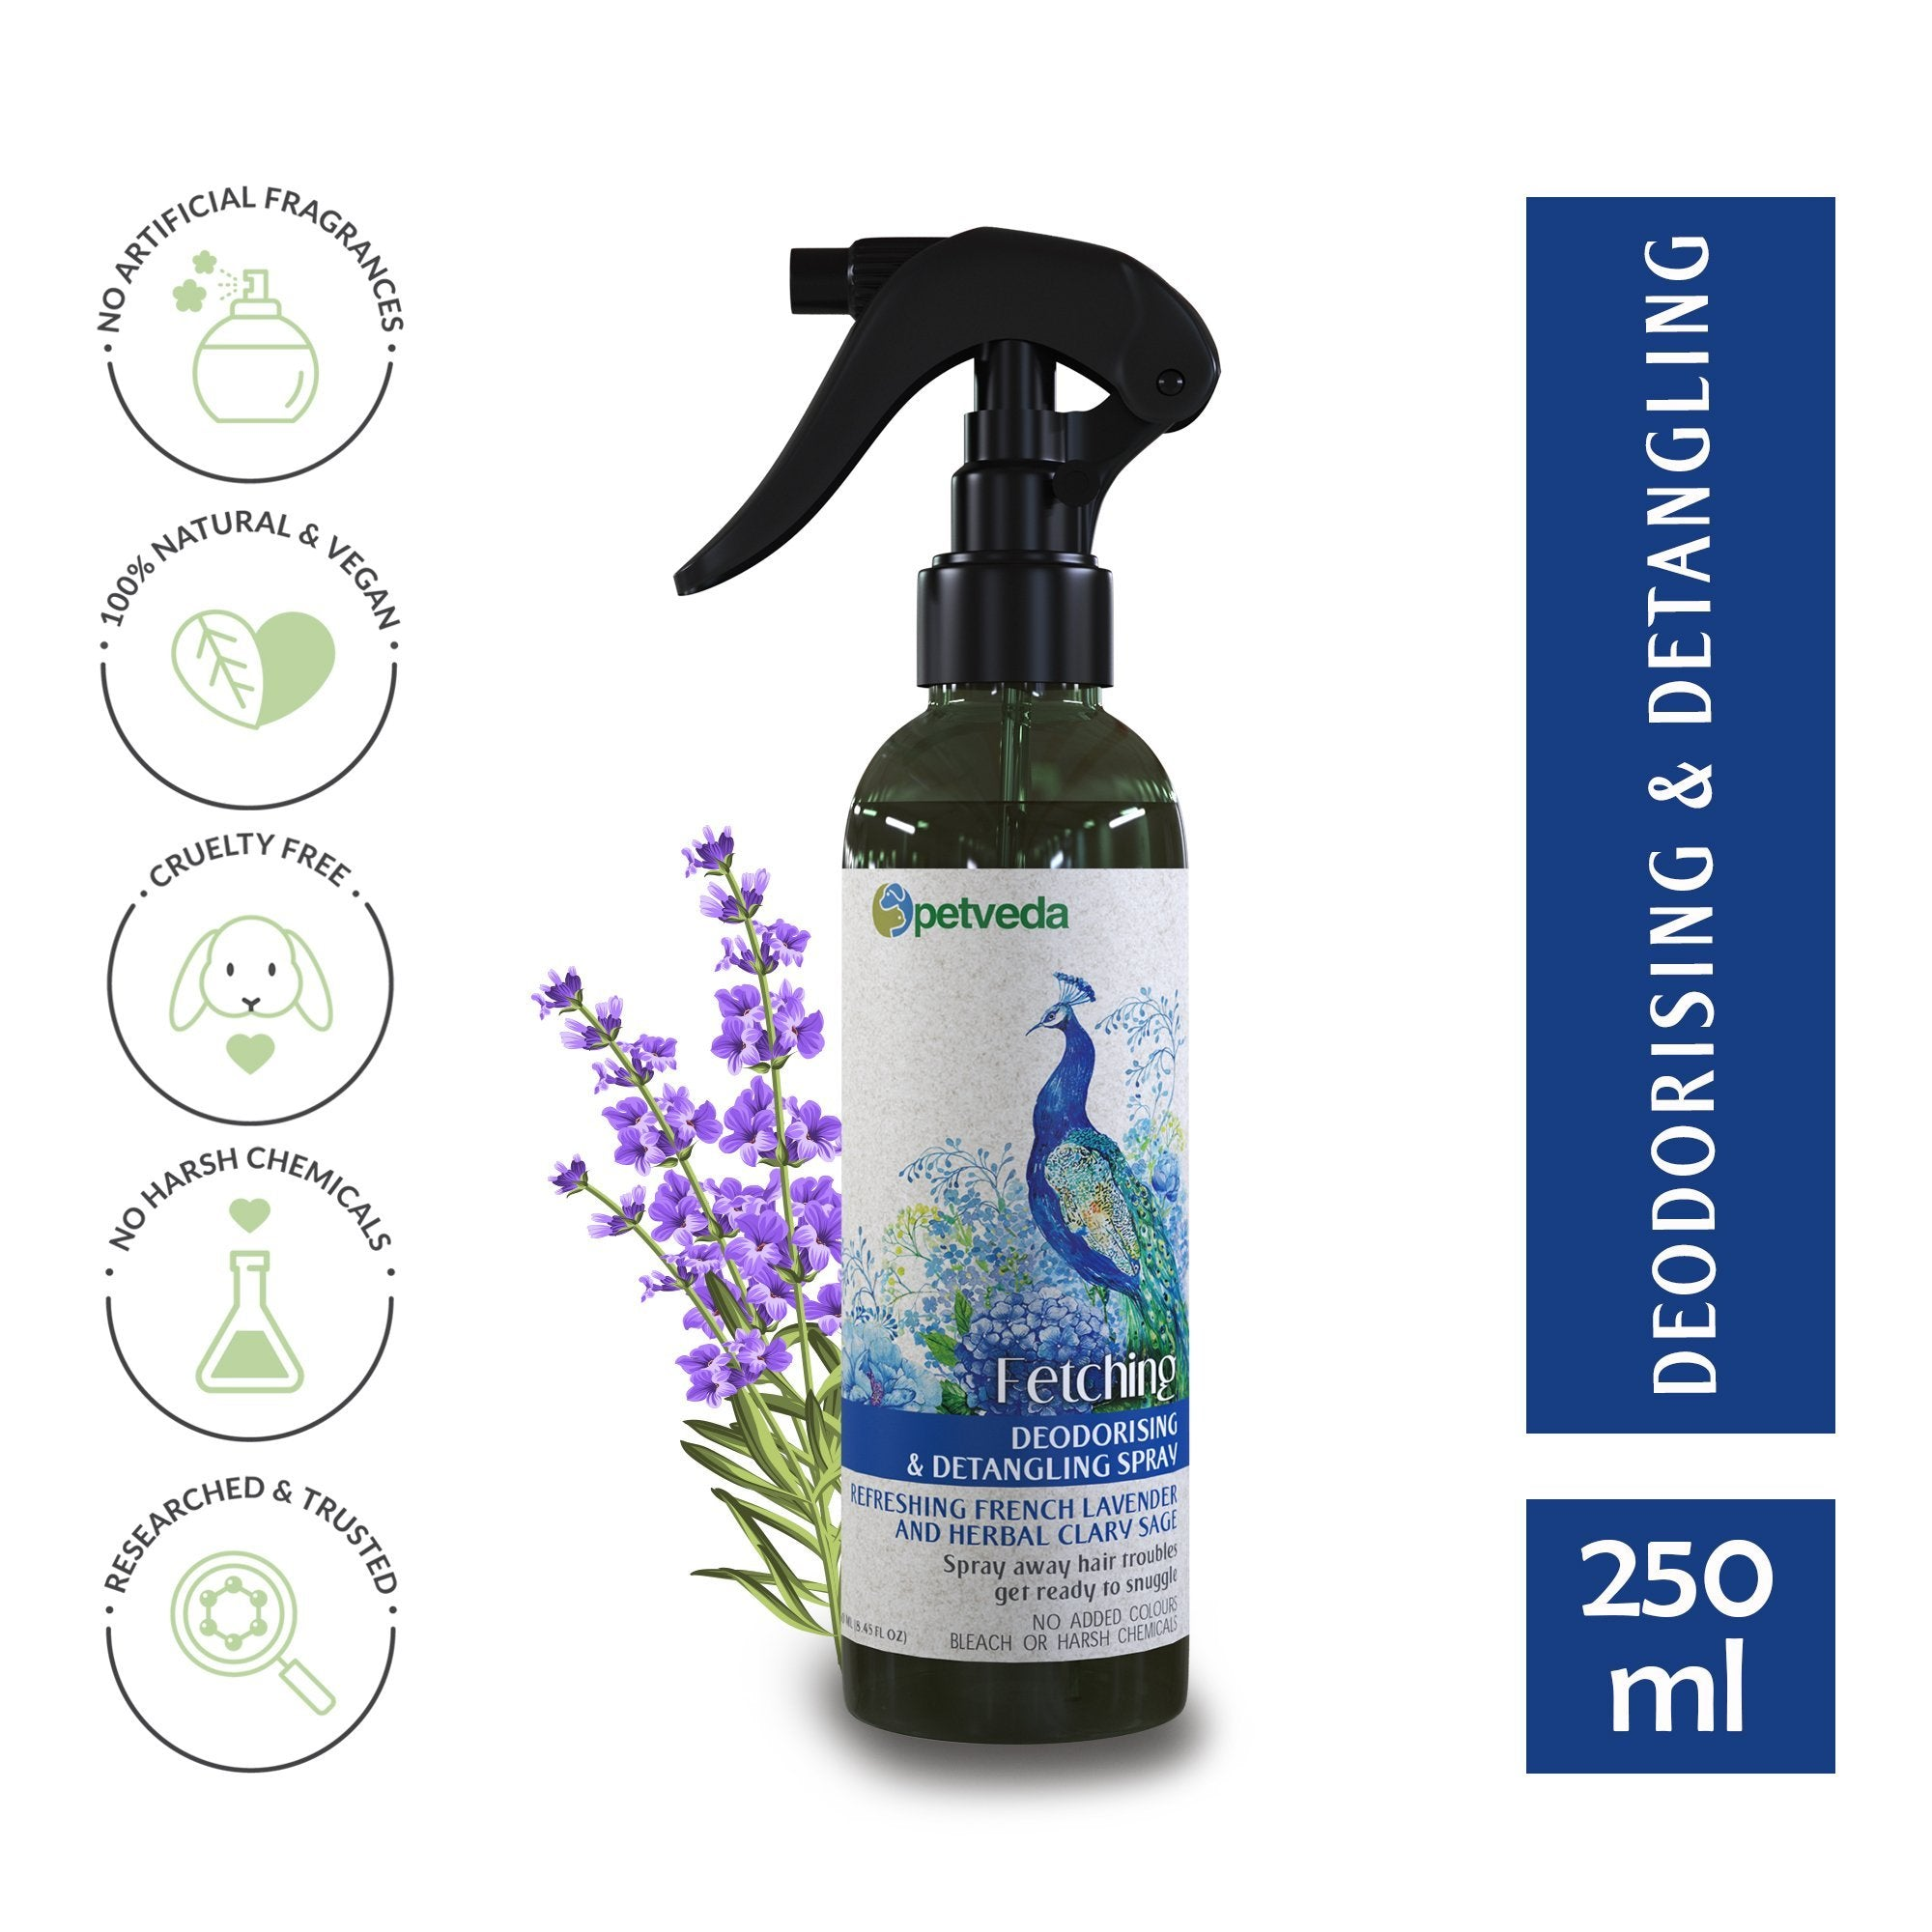 Fetching - Refreshing French Lavender & Herbal Clary Sage Deodorizing Spray 250ml